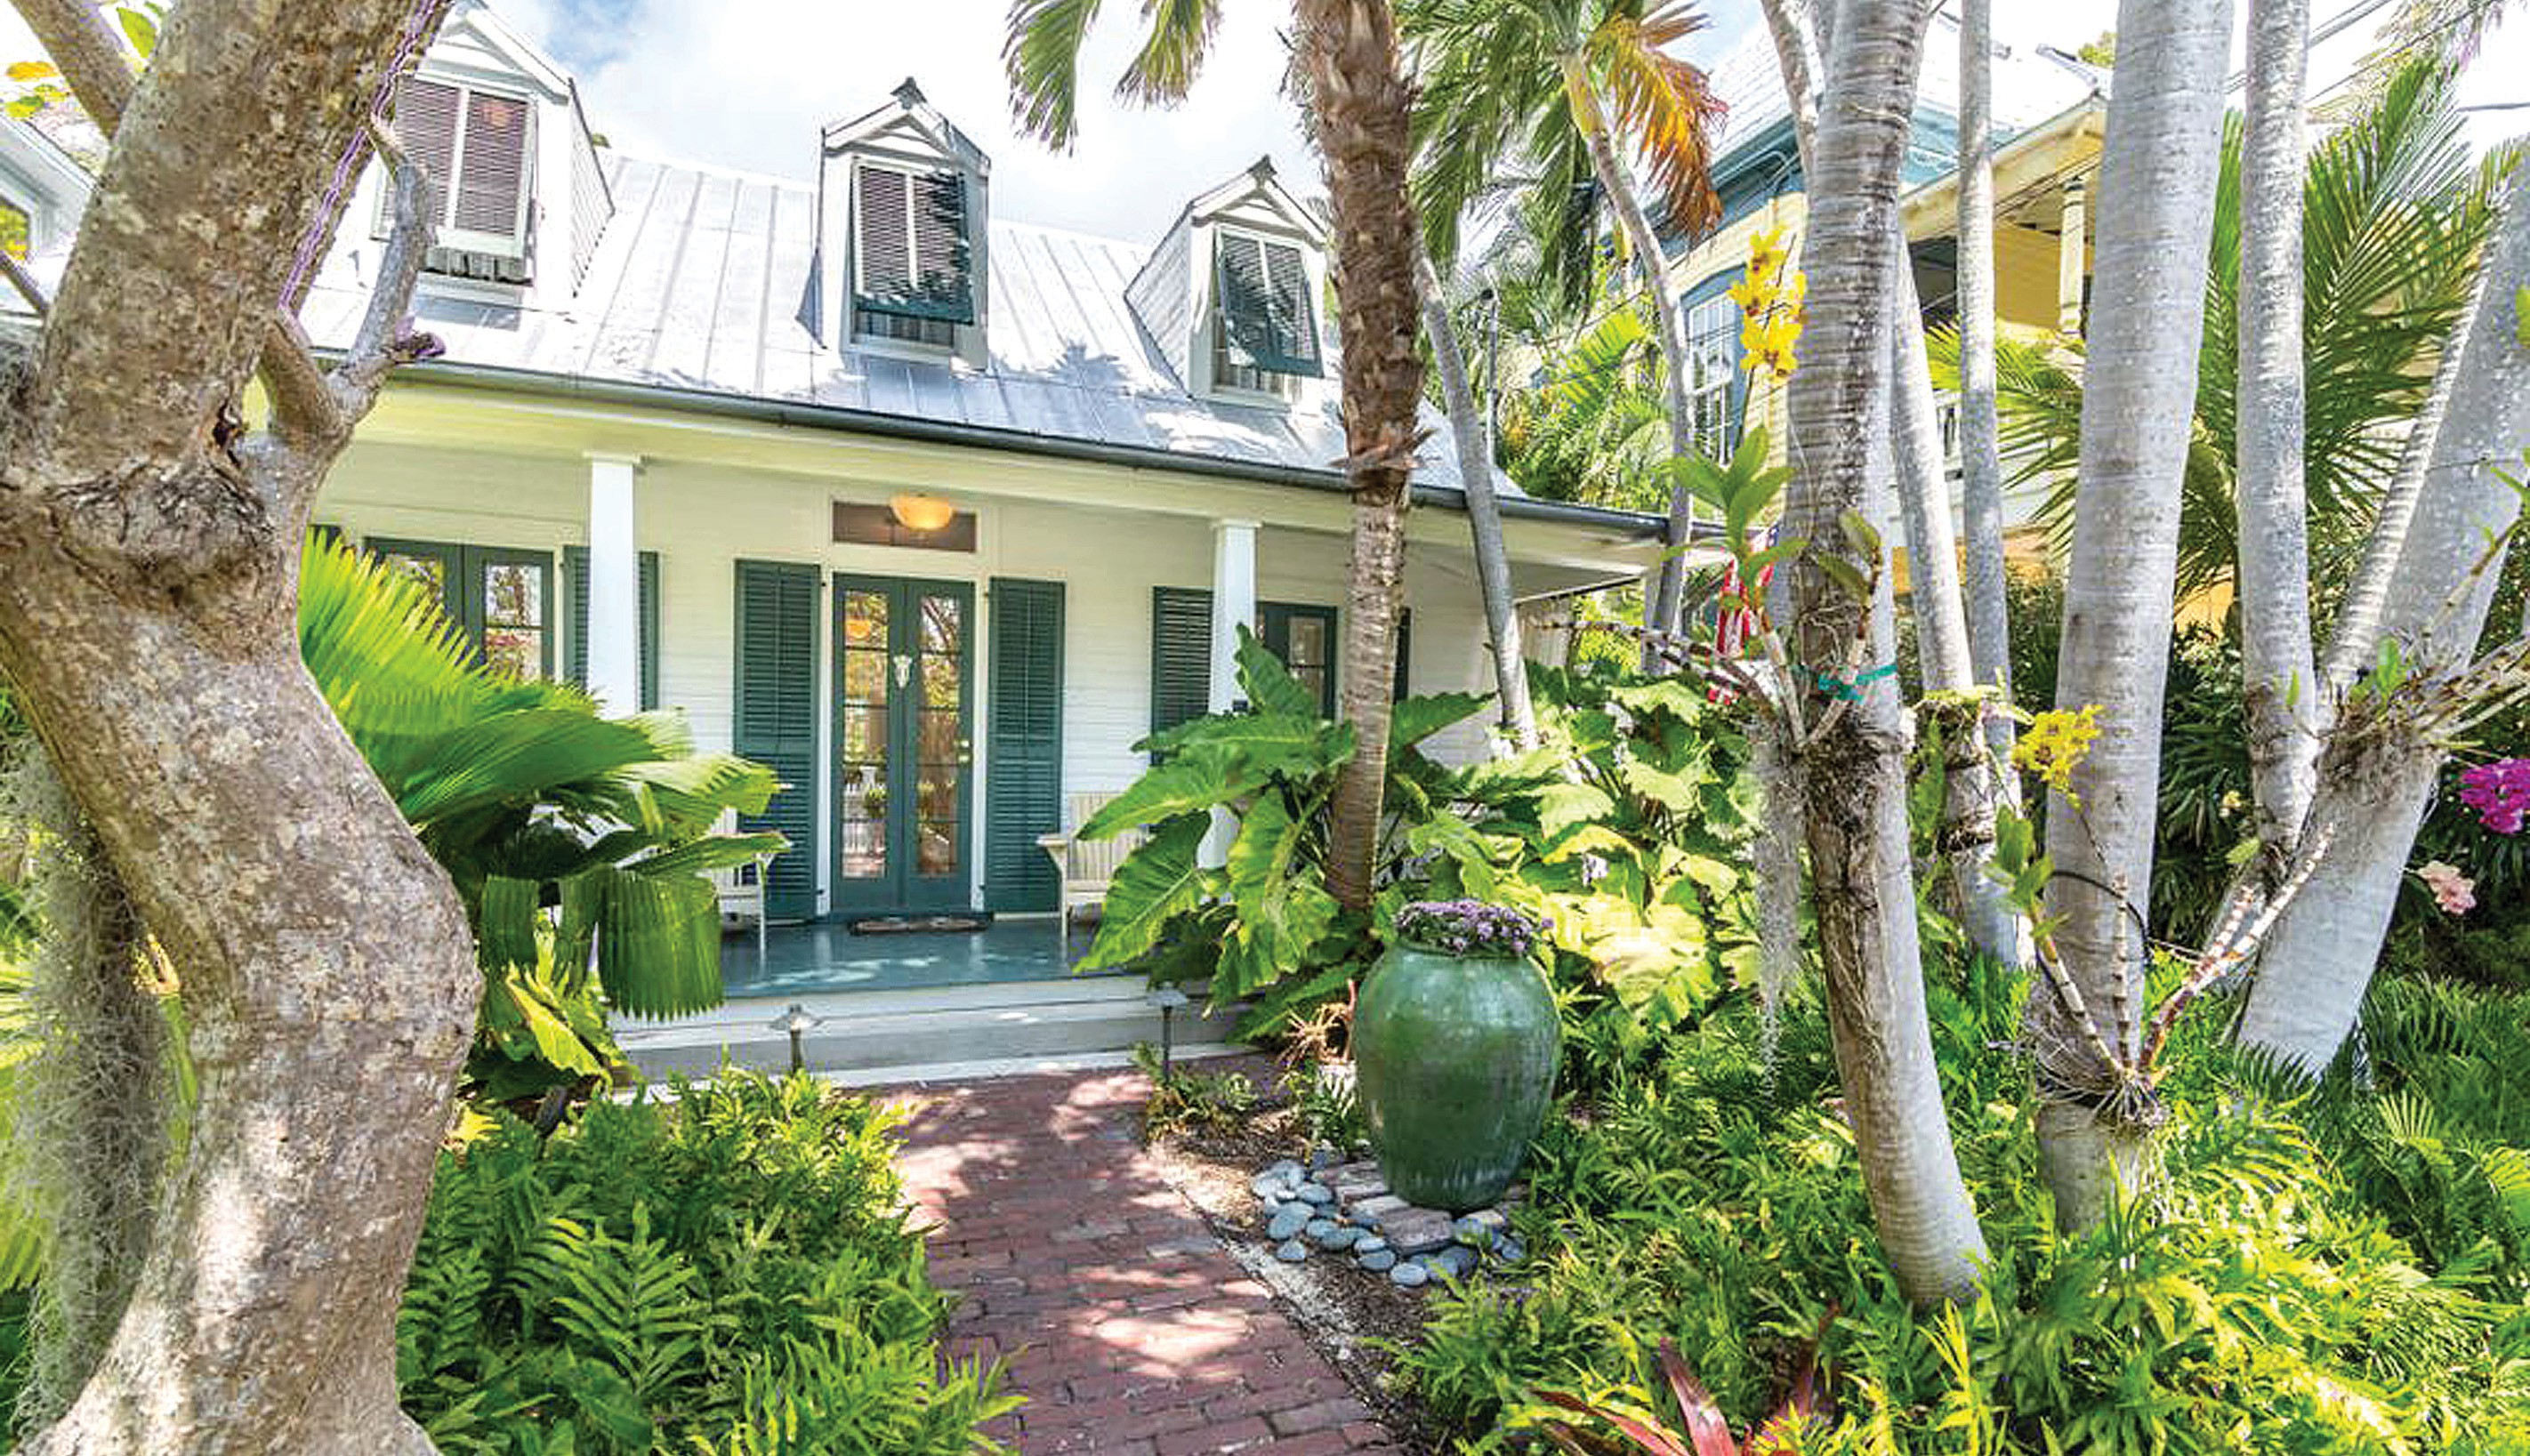 Historic island living on beautiful Key West | Fort Myers Florida Weekly